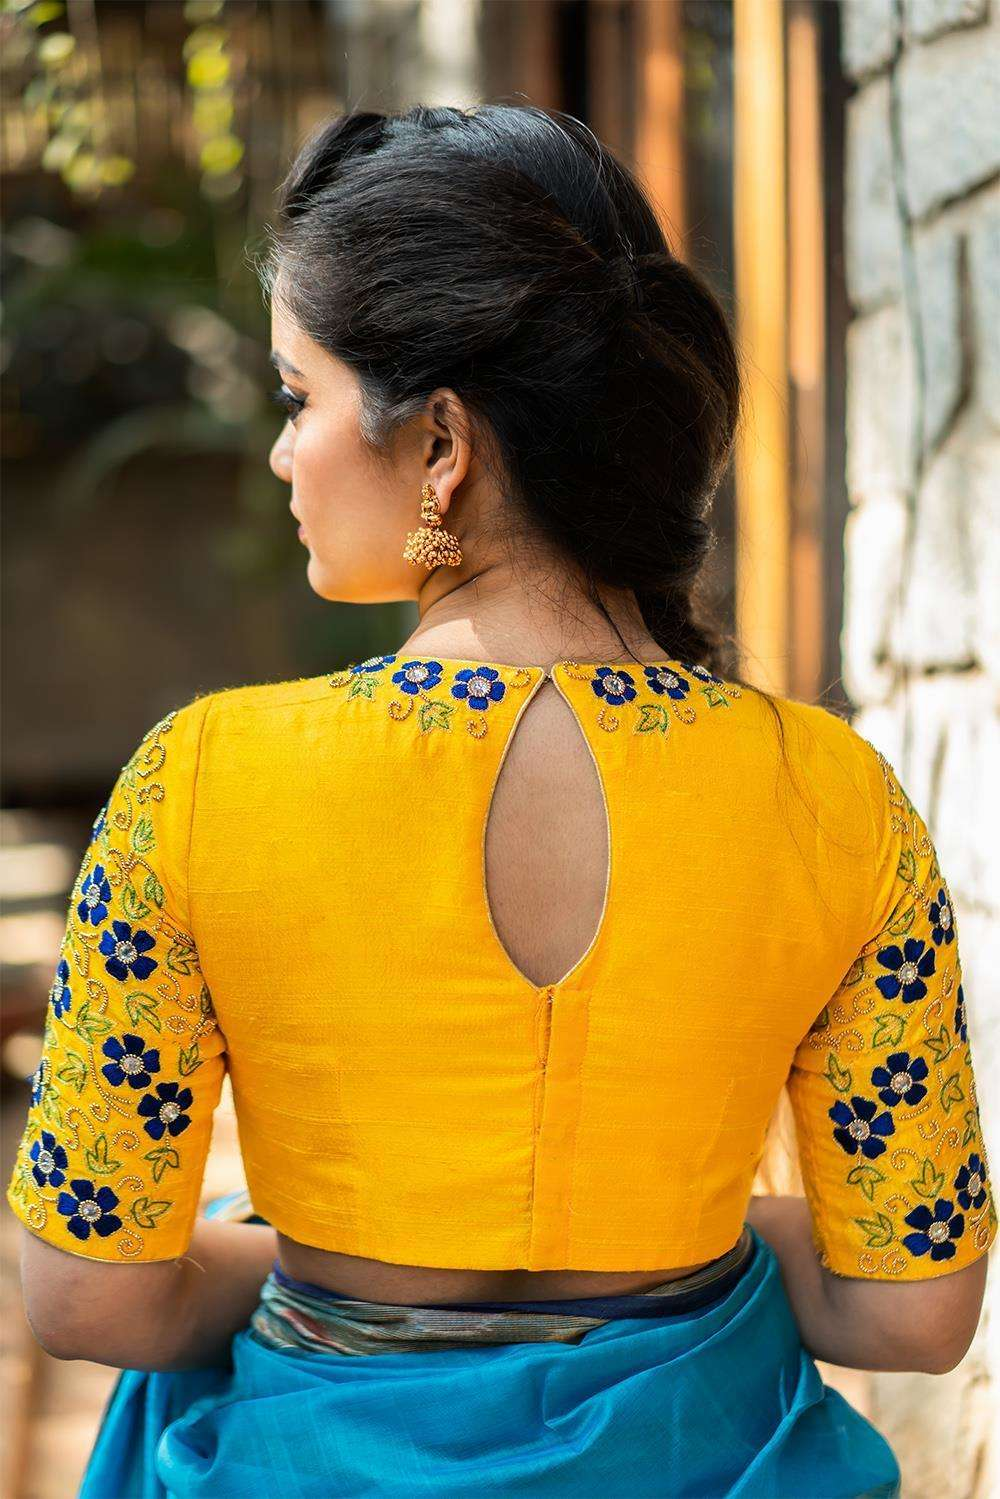 Abbakka Devi - Hand embroidered blouse - House of Blouse